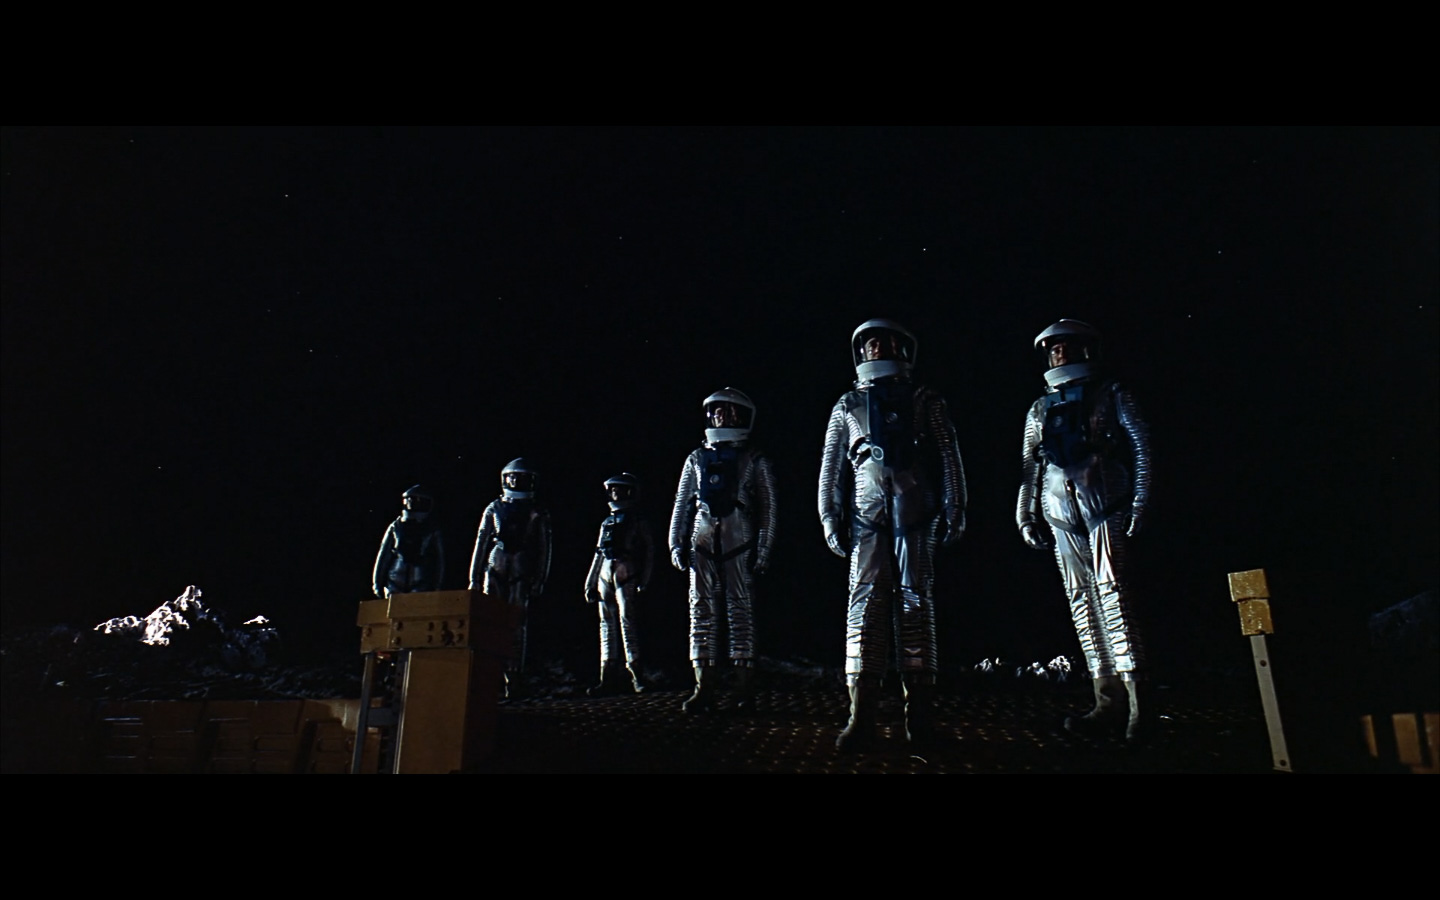 scene on the moon obelisk - space odyssey-6